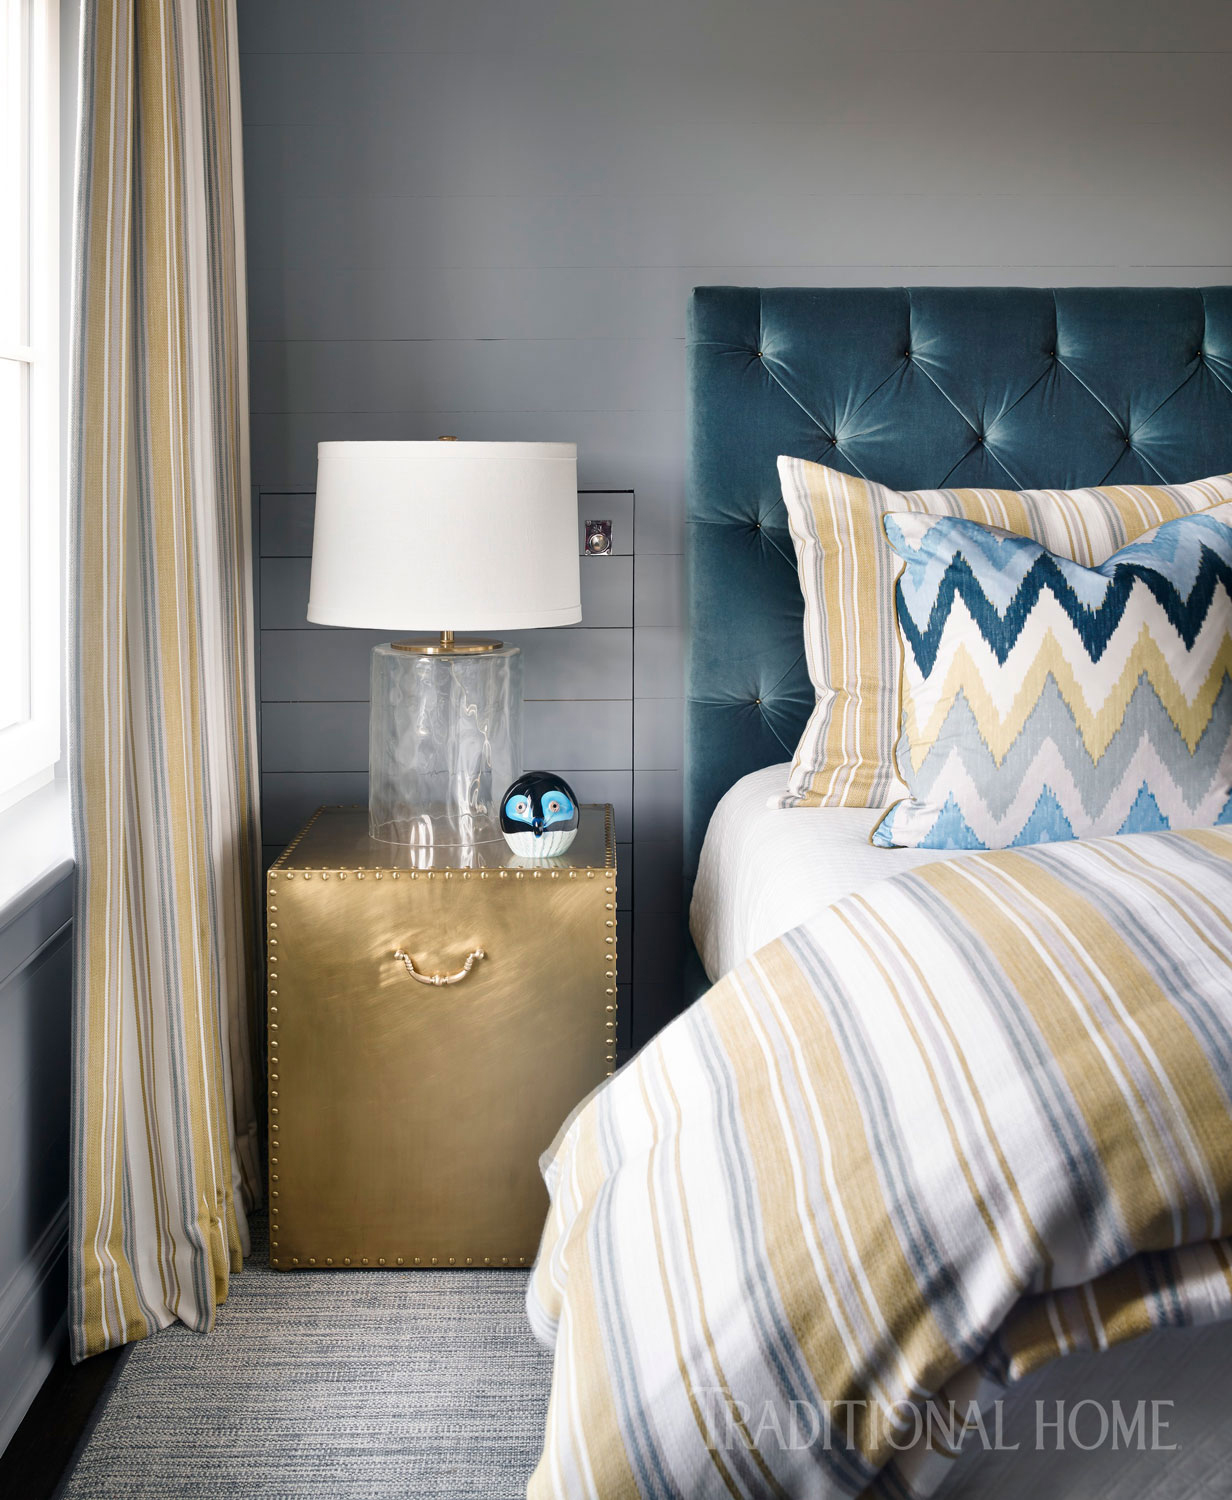 Bedroom with gold end table